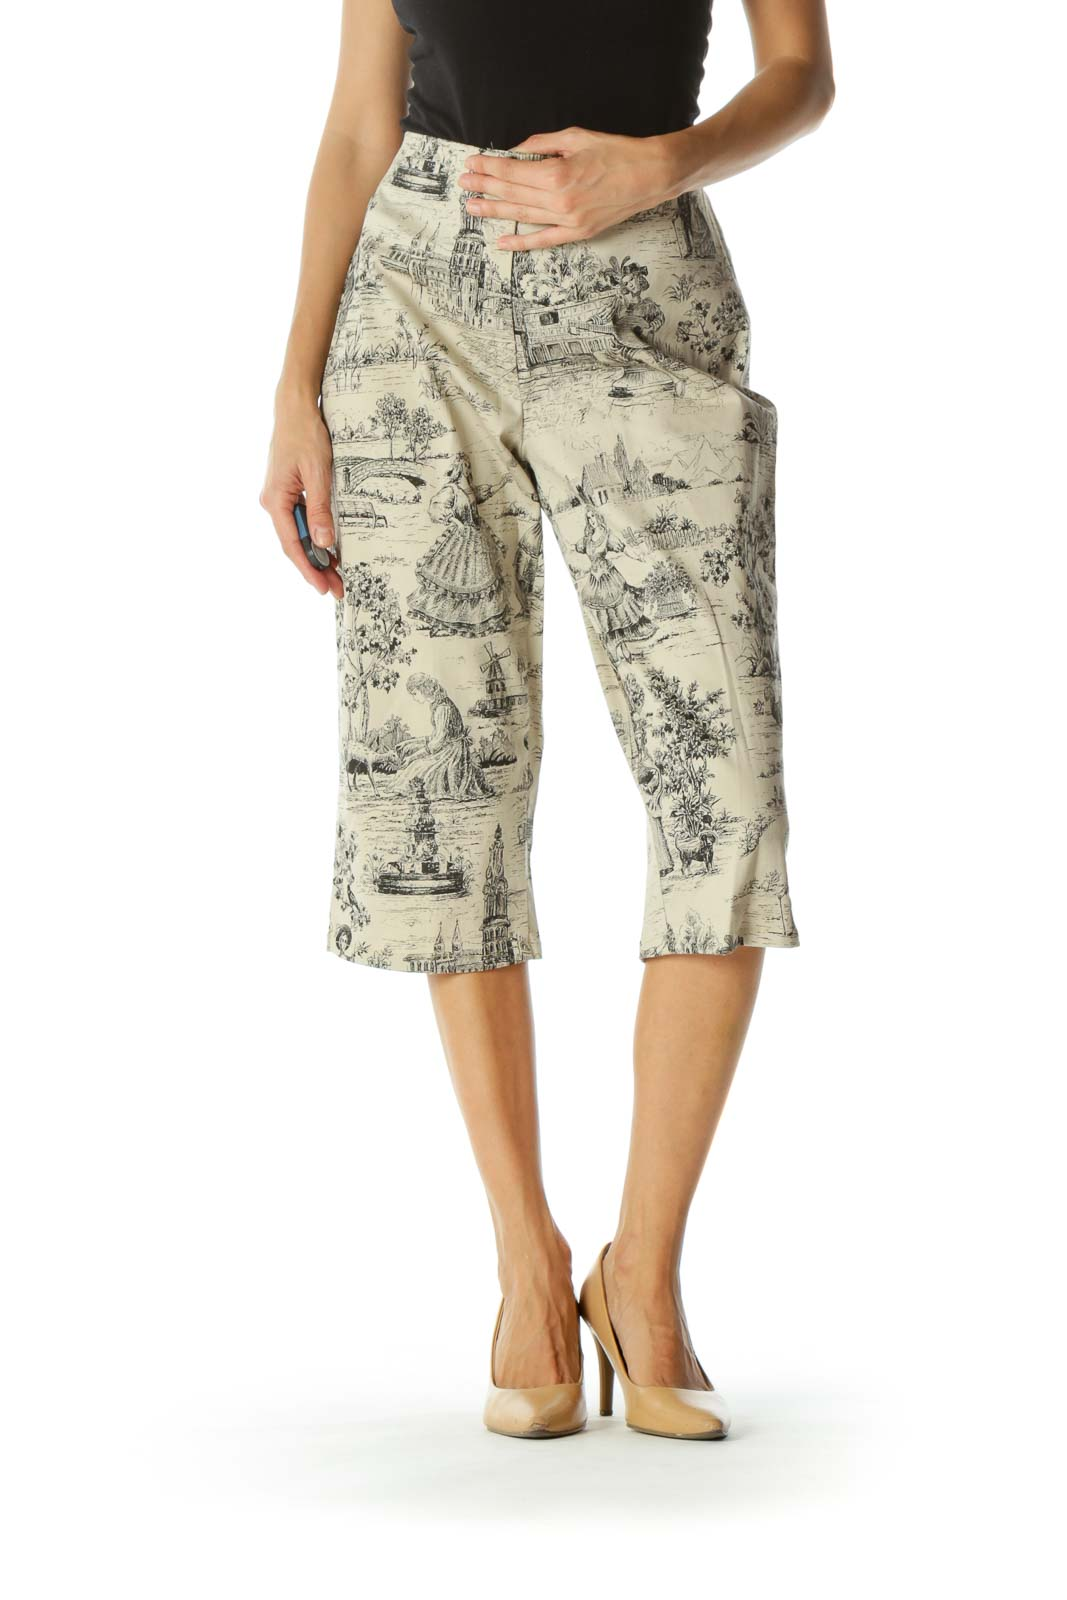 Beige Black Period Print Scenes Cropped Zippered High-Waist Stretch Pants (Altered)